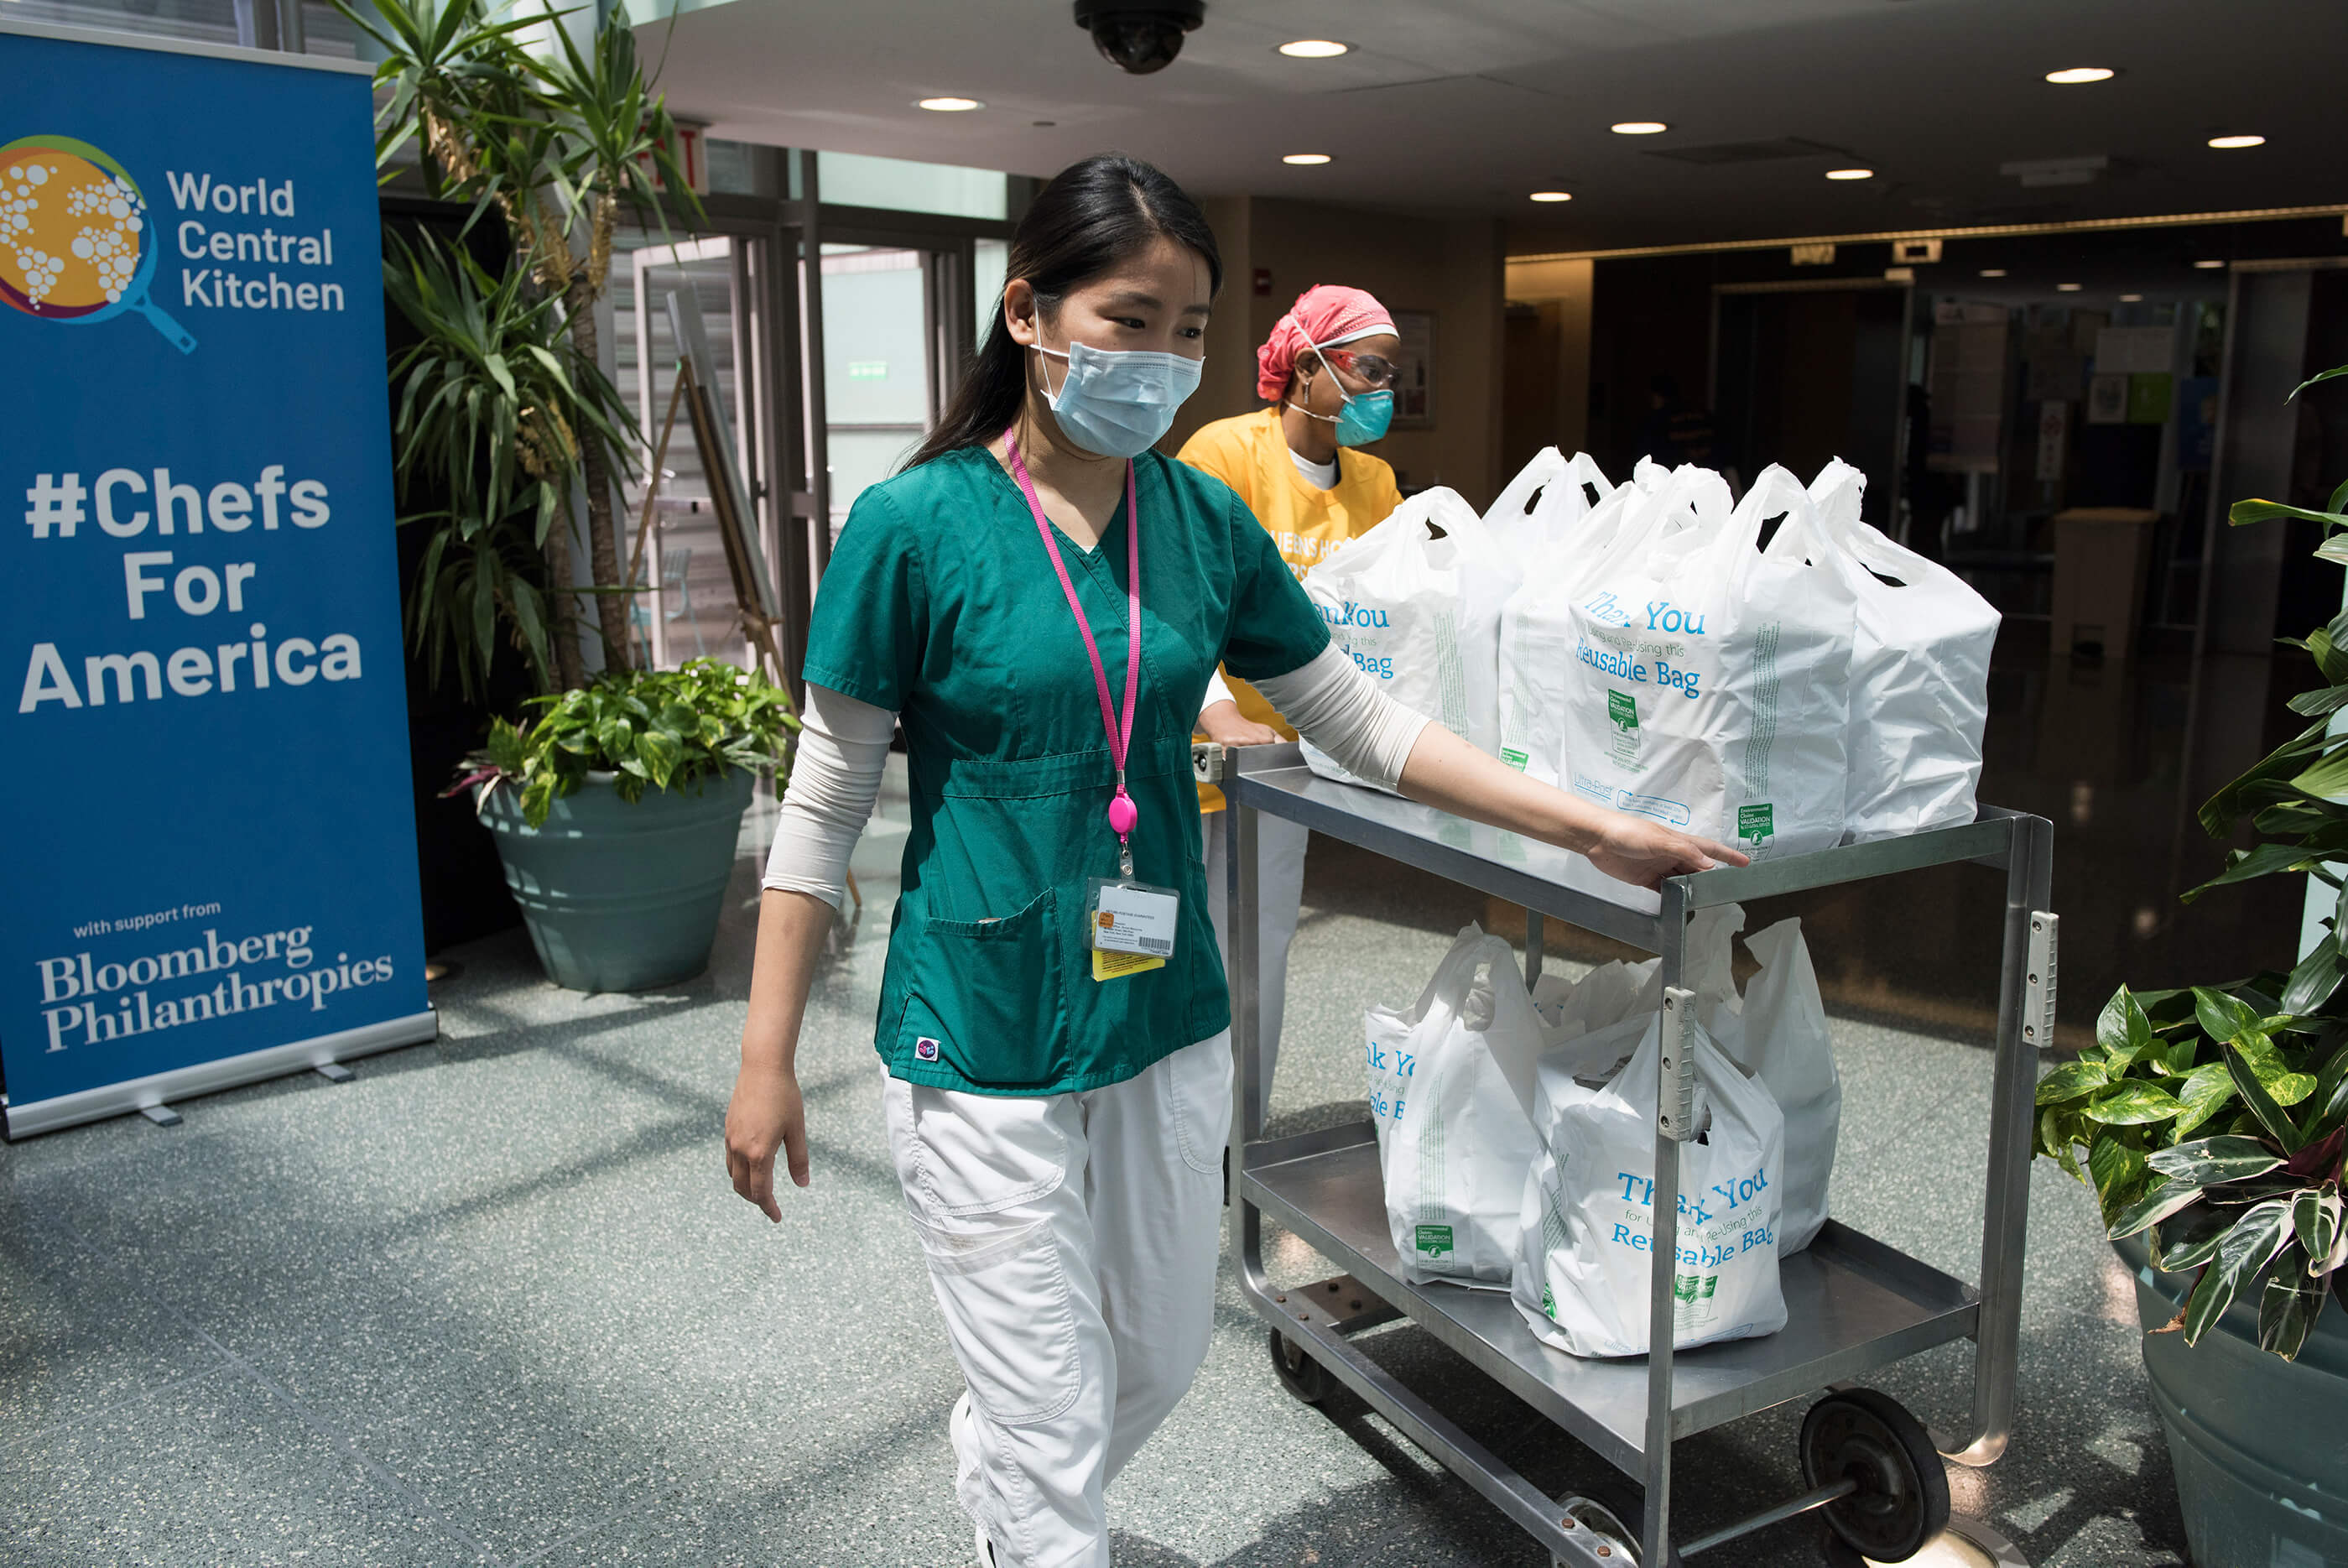 Bloomberg Philanthropies and World Central Kitchen team up to feed NYC Hospital employees